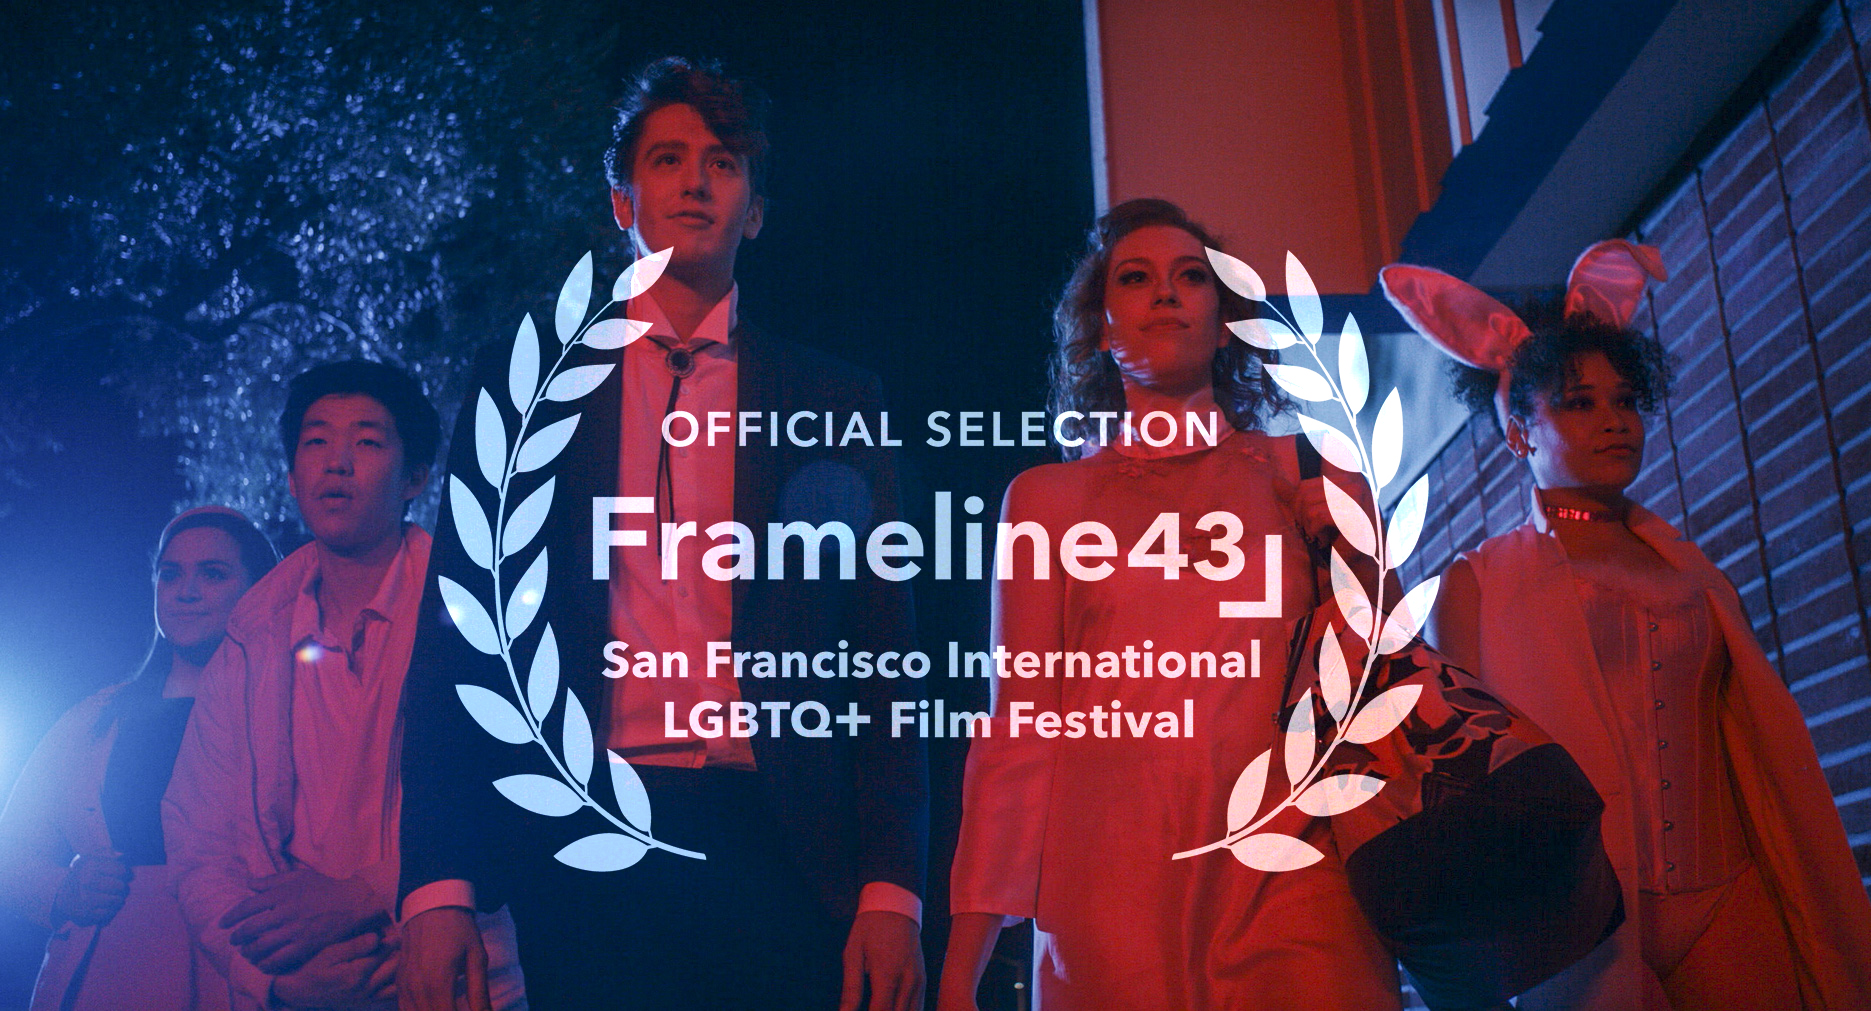 U.S. Premiere - The Filth is going to the Frameline Film Festival in San Francisco!Saturday, June 29 @ 6:30pmRoxie Theater3117 16th StSan Francisco, CA 94103